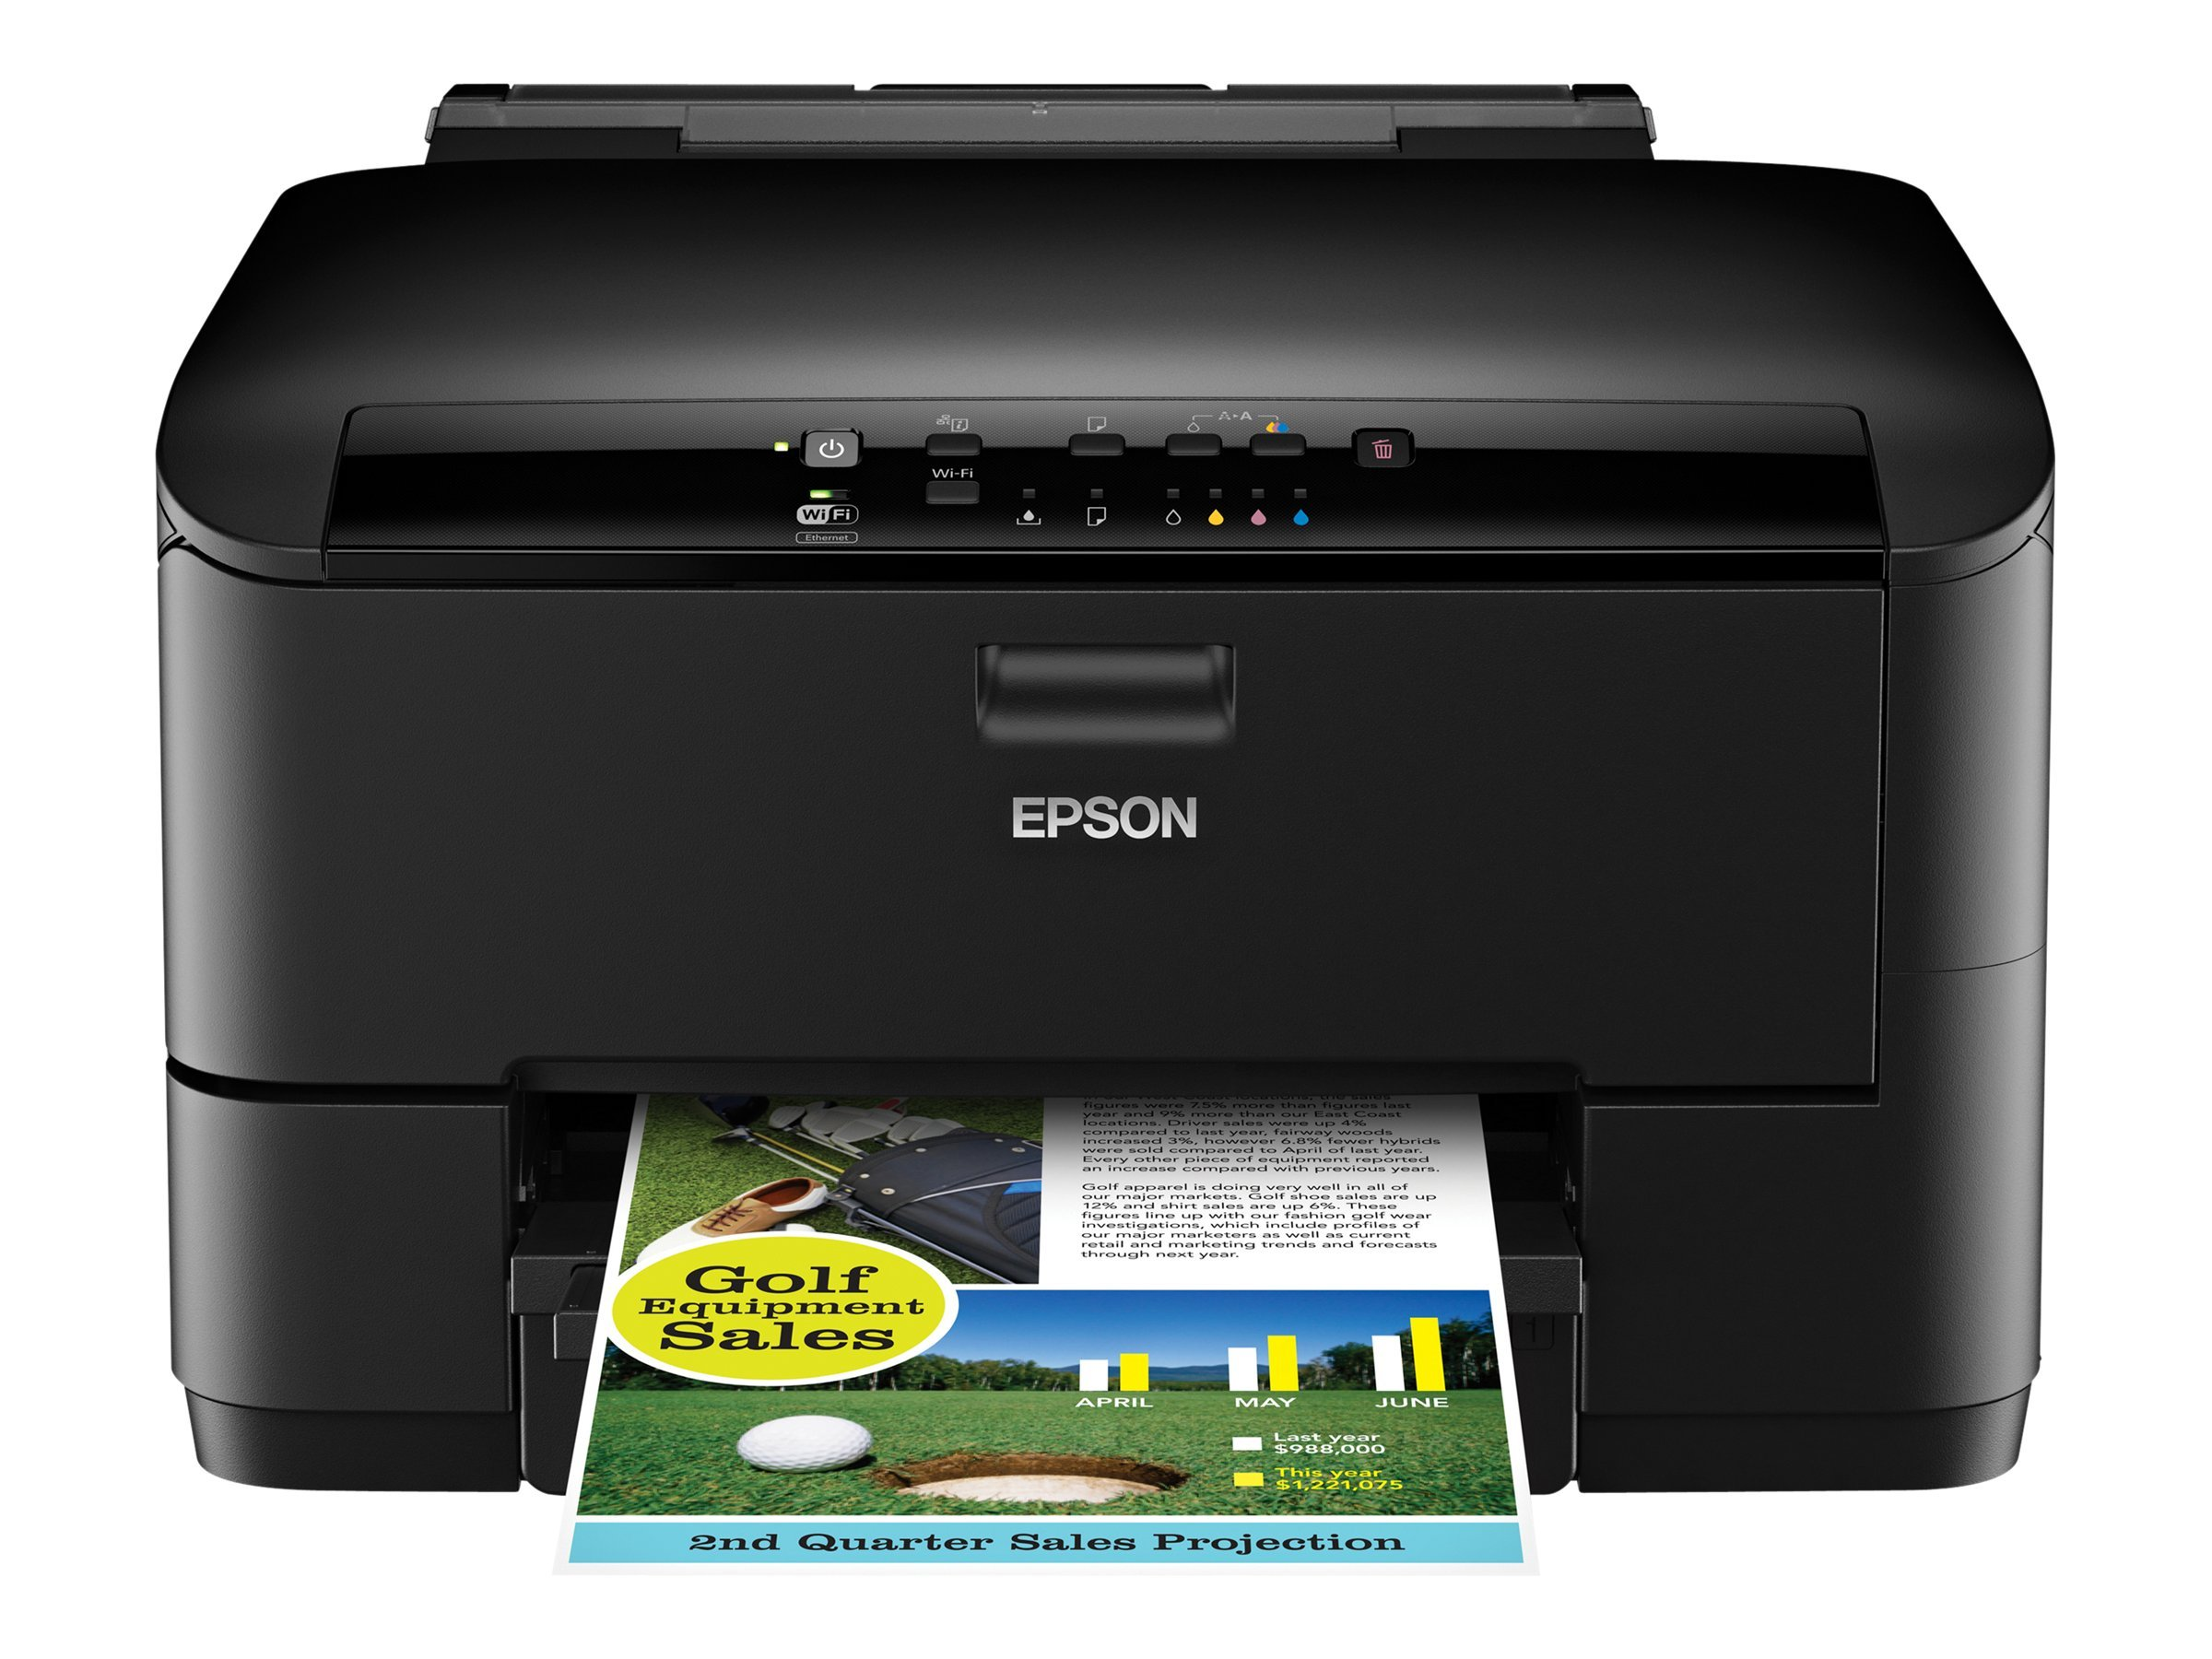 Epson WorkForce Pro WP-4020 Inkjet Printer - $149.99 less instant rebate of $37.00, C11CB30201